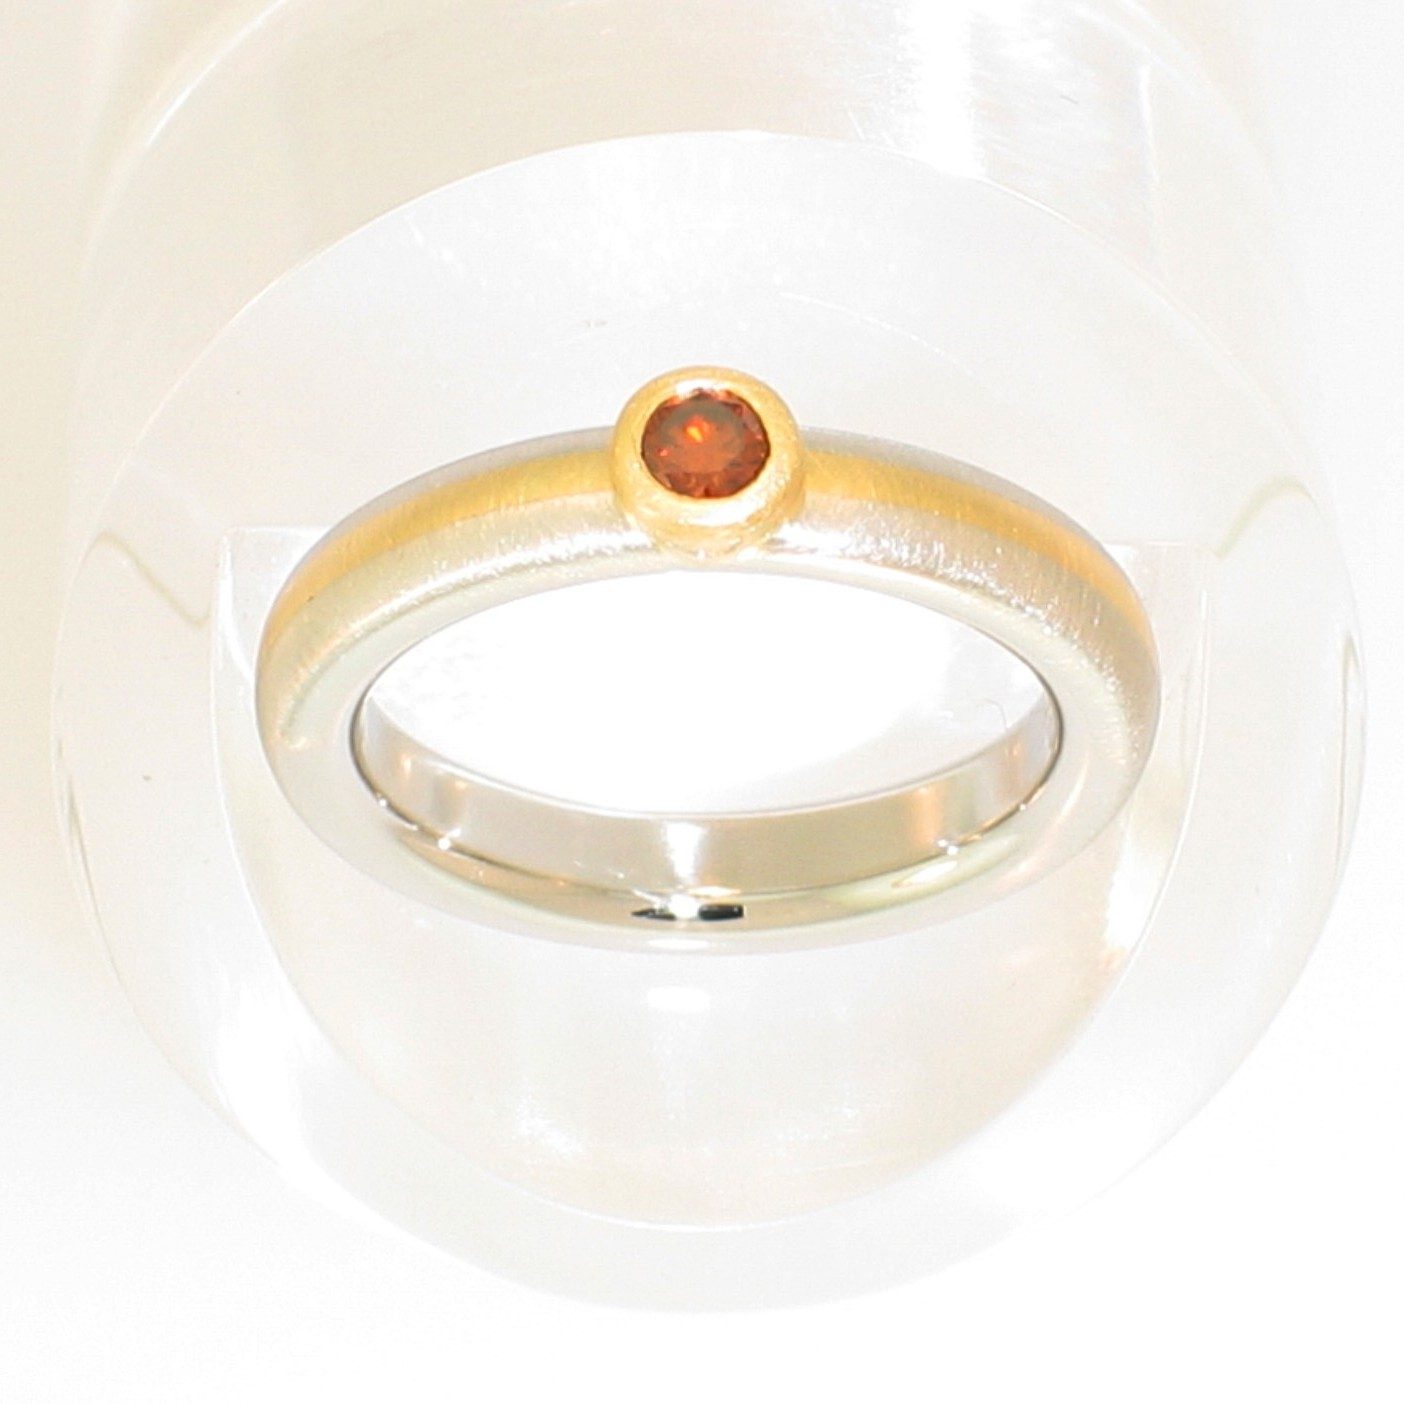 Platinum and 18 Karat Yellow Gold 2-tone matte-finished heavy band with natural-colored round orange diamond in 18 Karat Yellow Gold full bezel setting